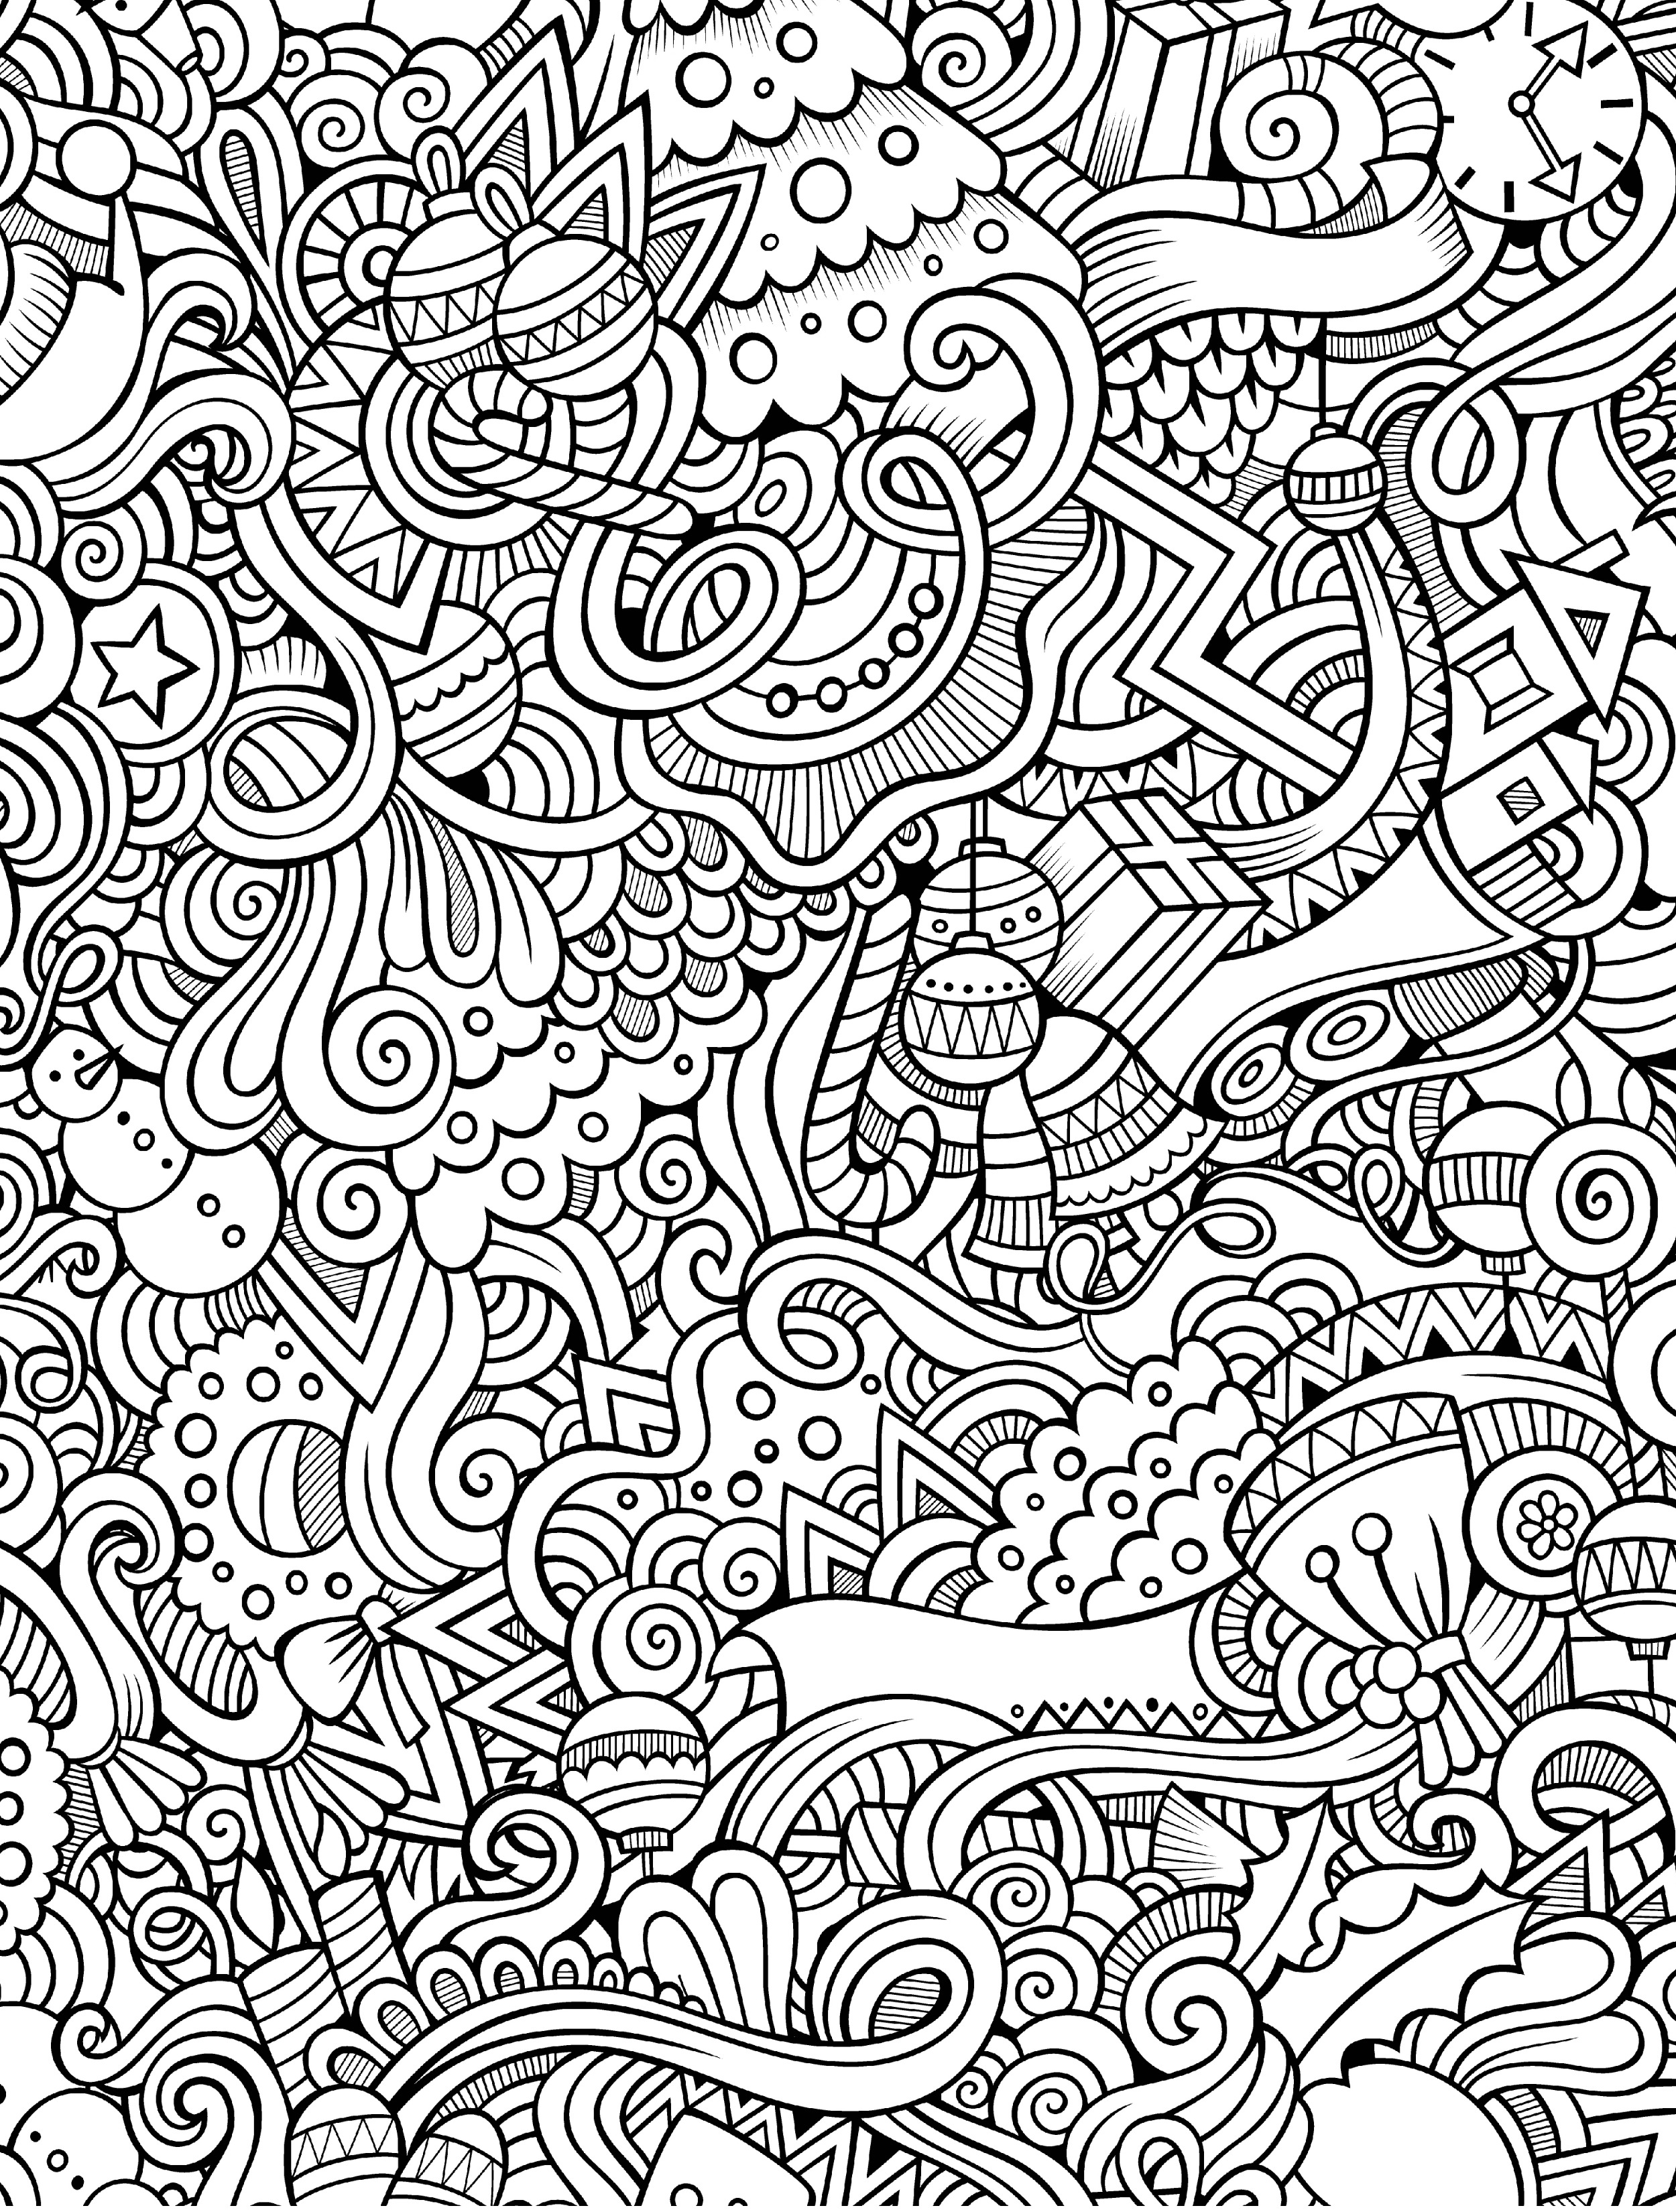 Free Christmas Coloring Pages For Adults Printable Hard To Color With 10 Holiday Adult